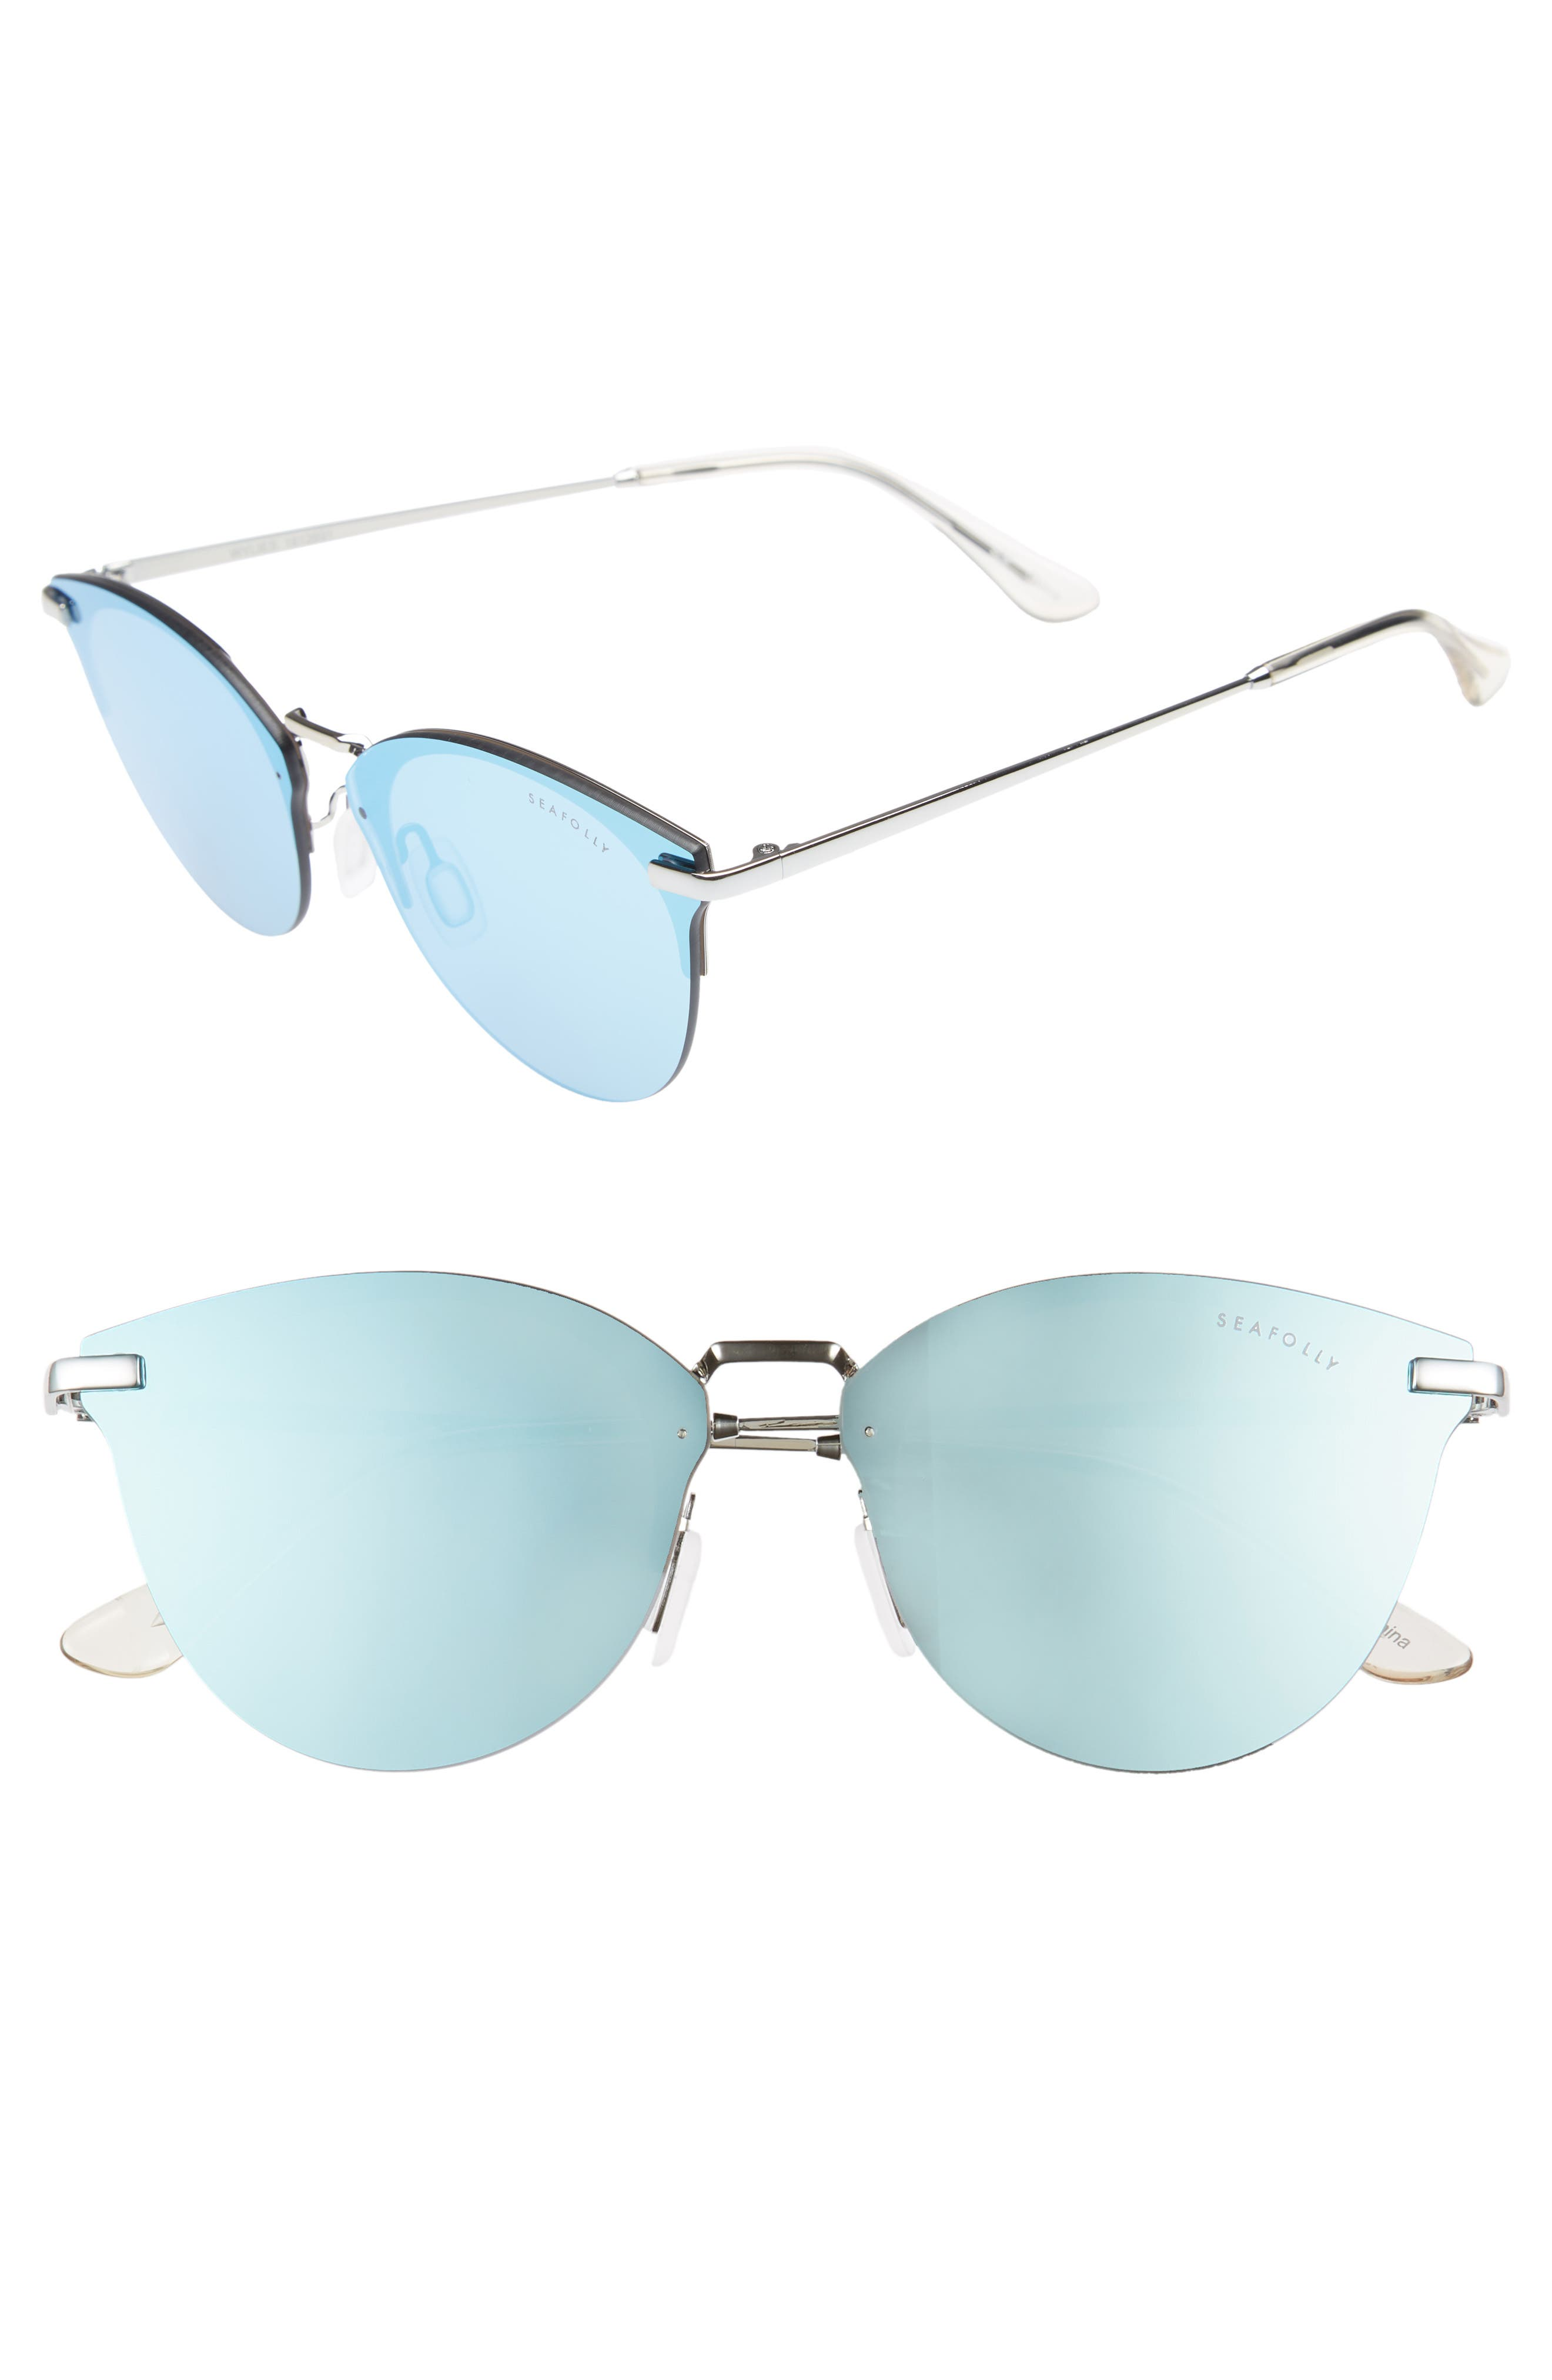 Wylies 50mm Rimless Sunglasses,                             Main thumbnail 1, color,                             400